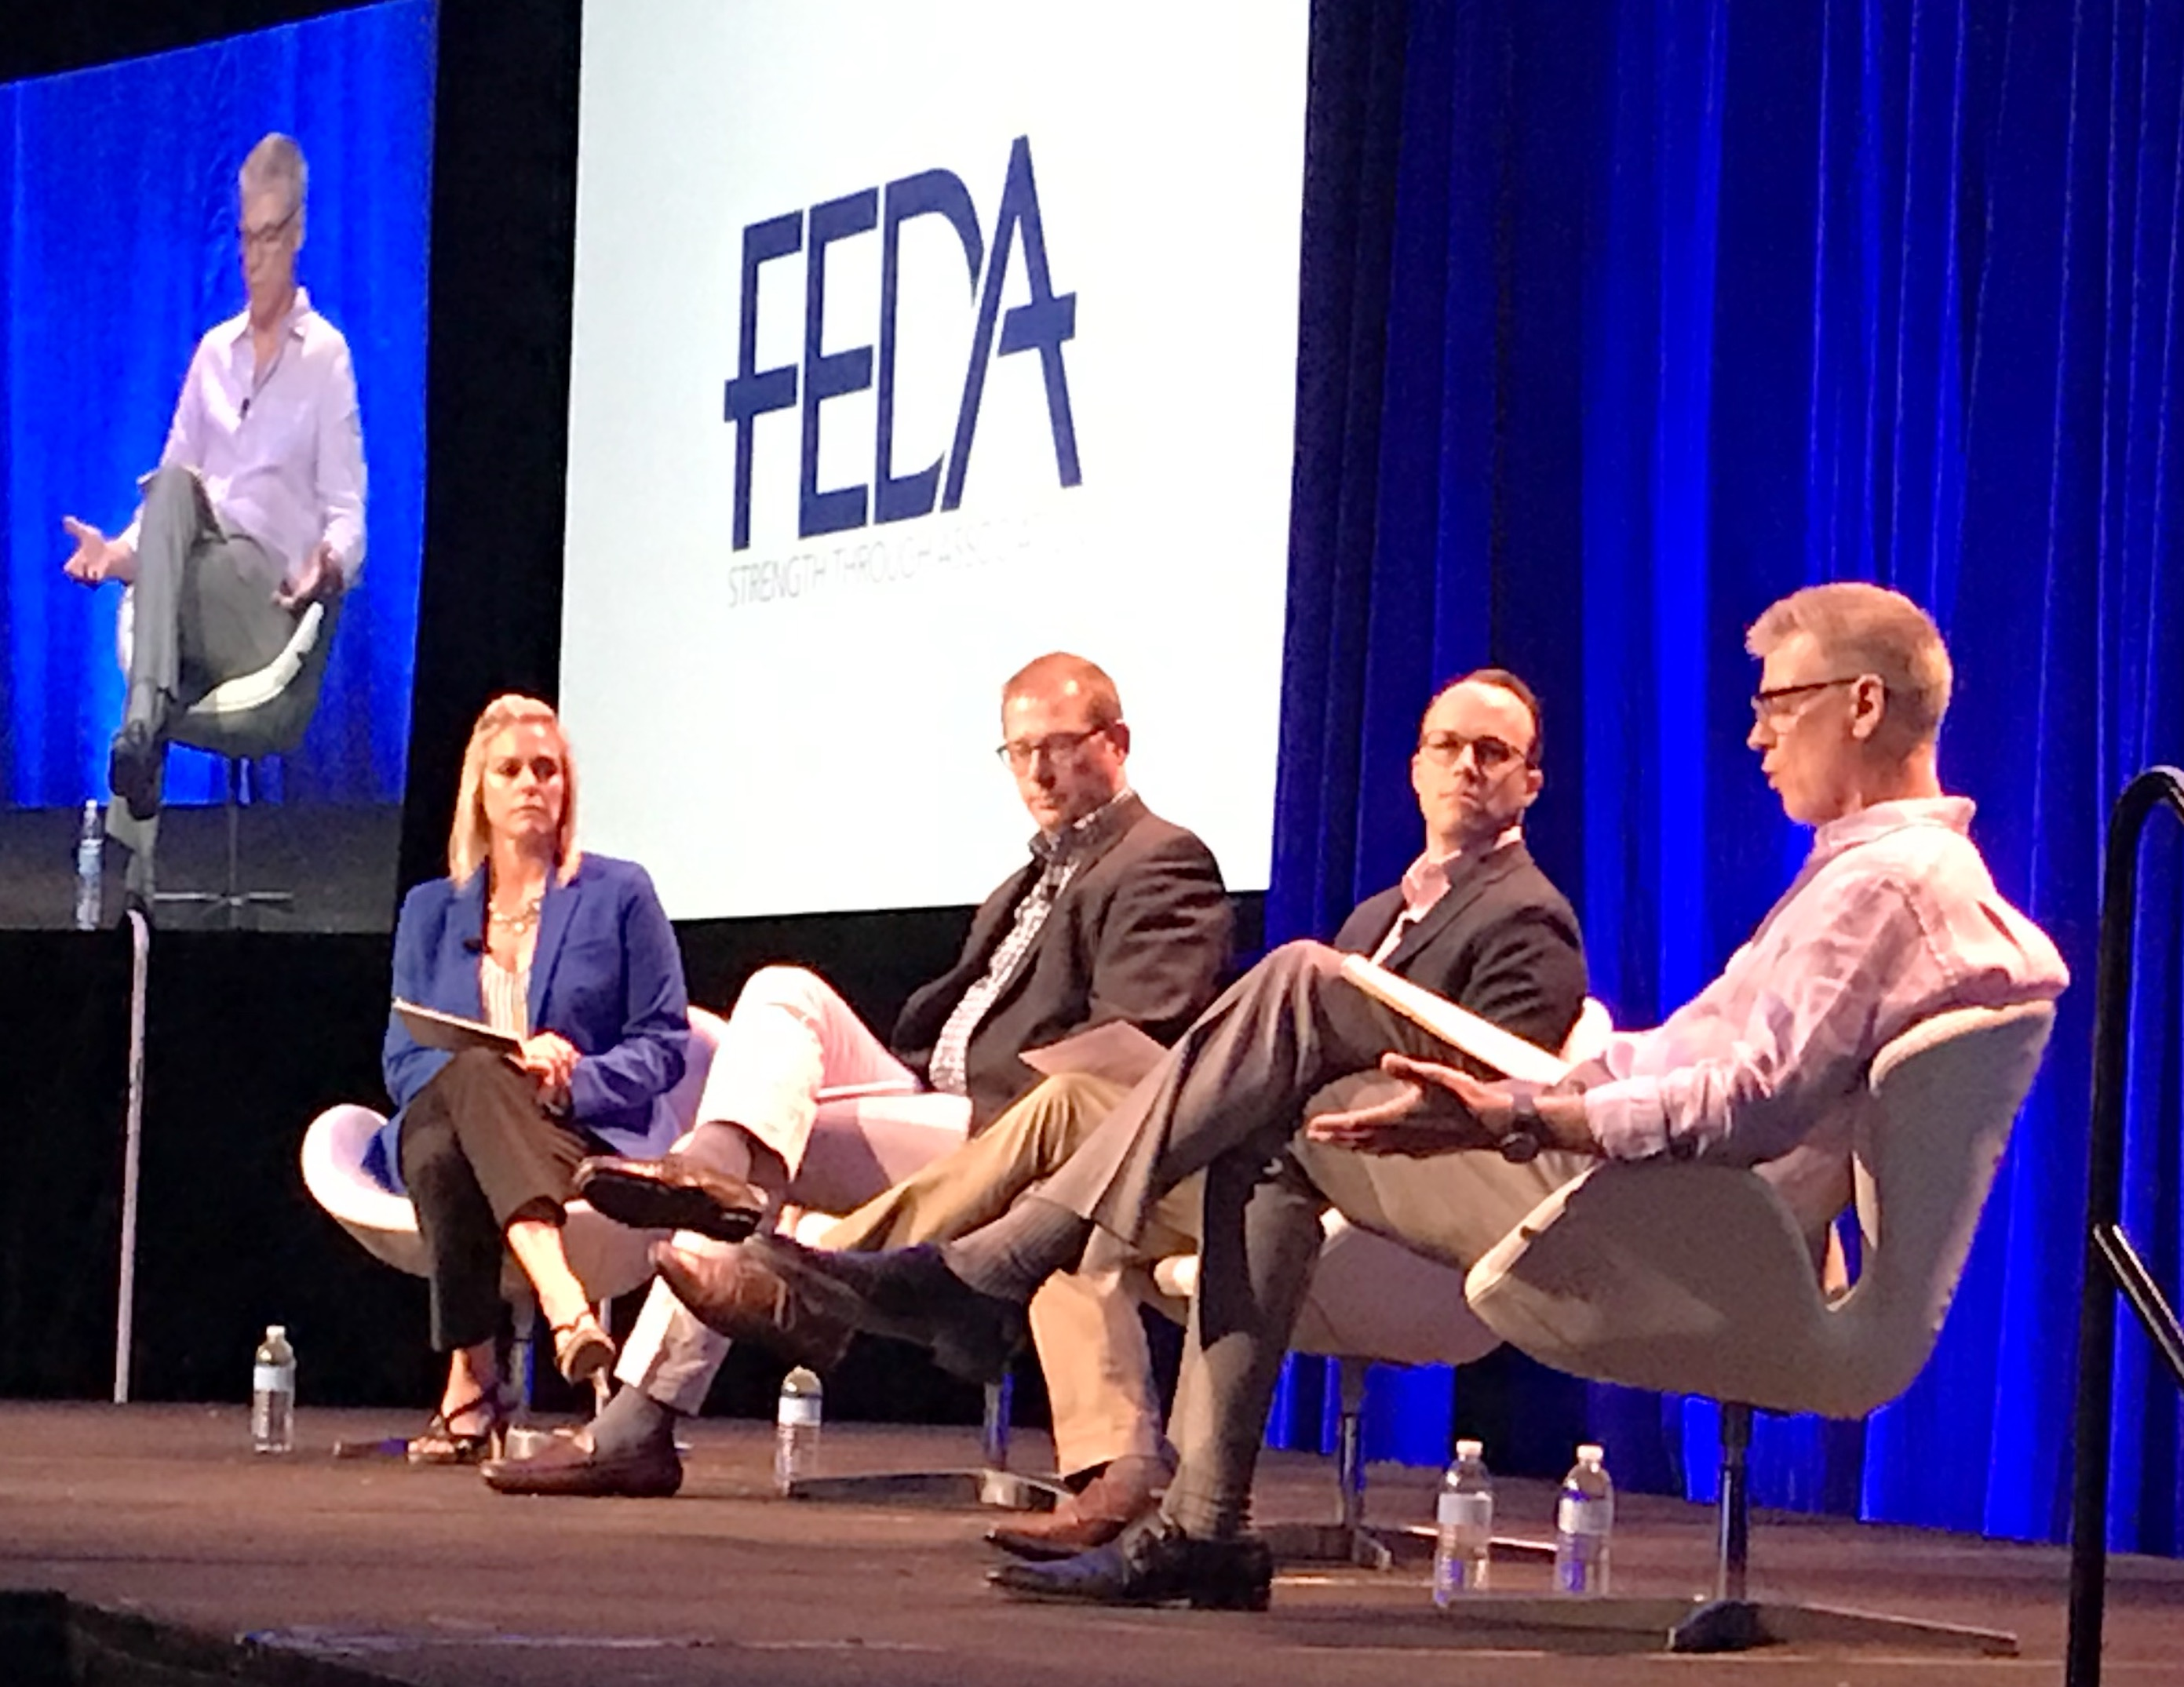 Industry leaders from Alto-Shaam, Clark Food Service Equipment and Boelter Companies discuss the future of the industry at FEDA 2019